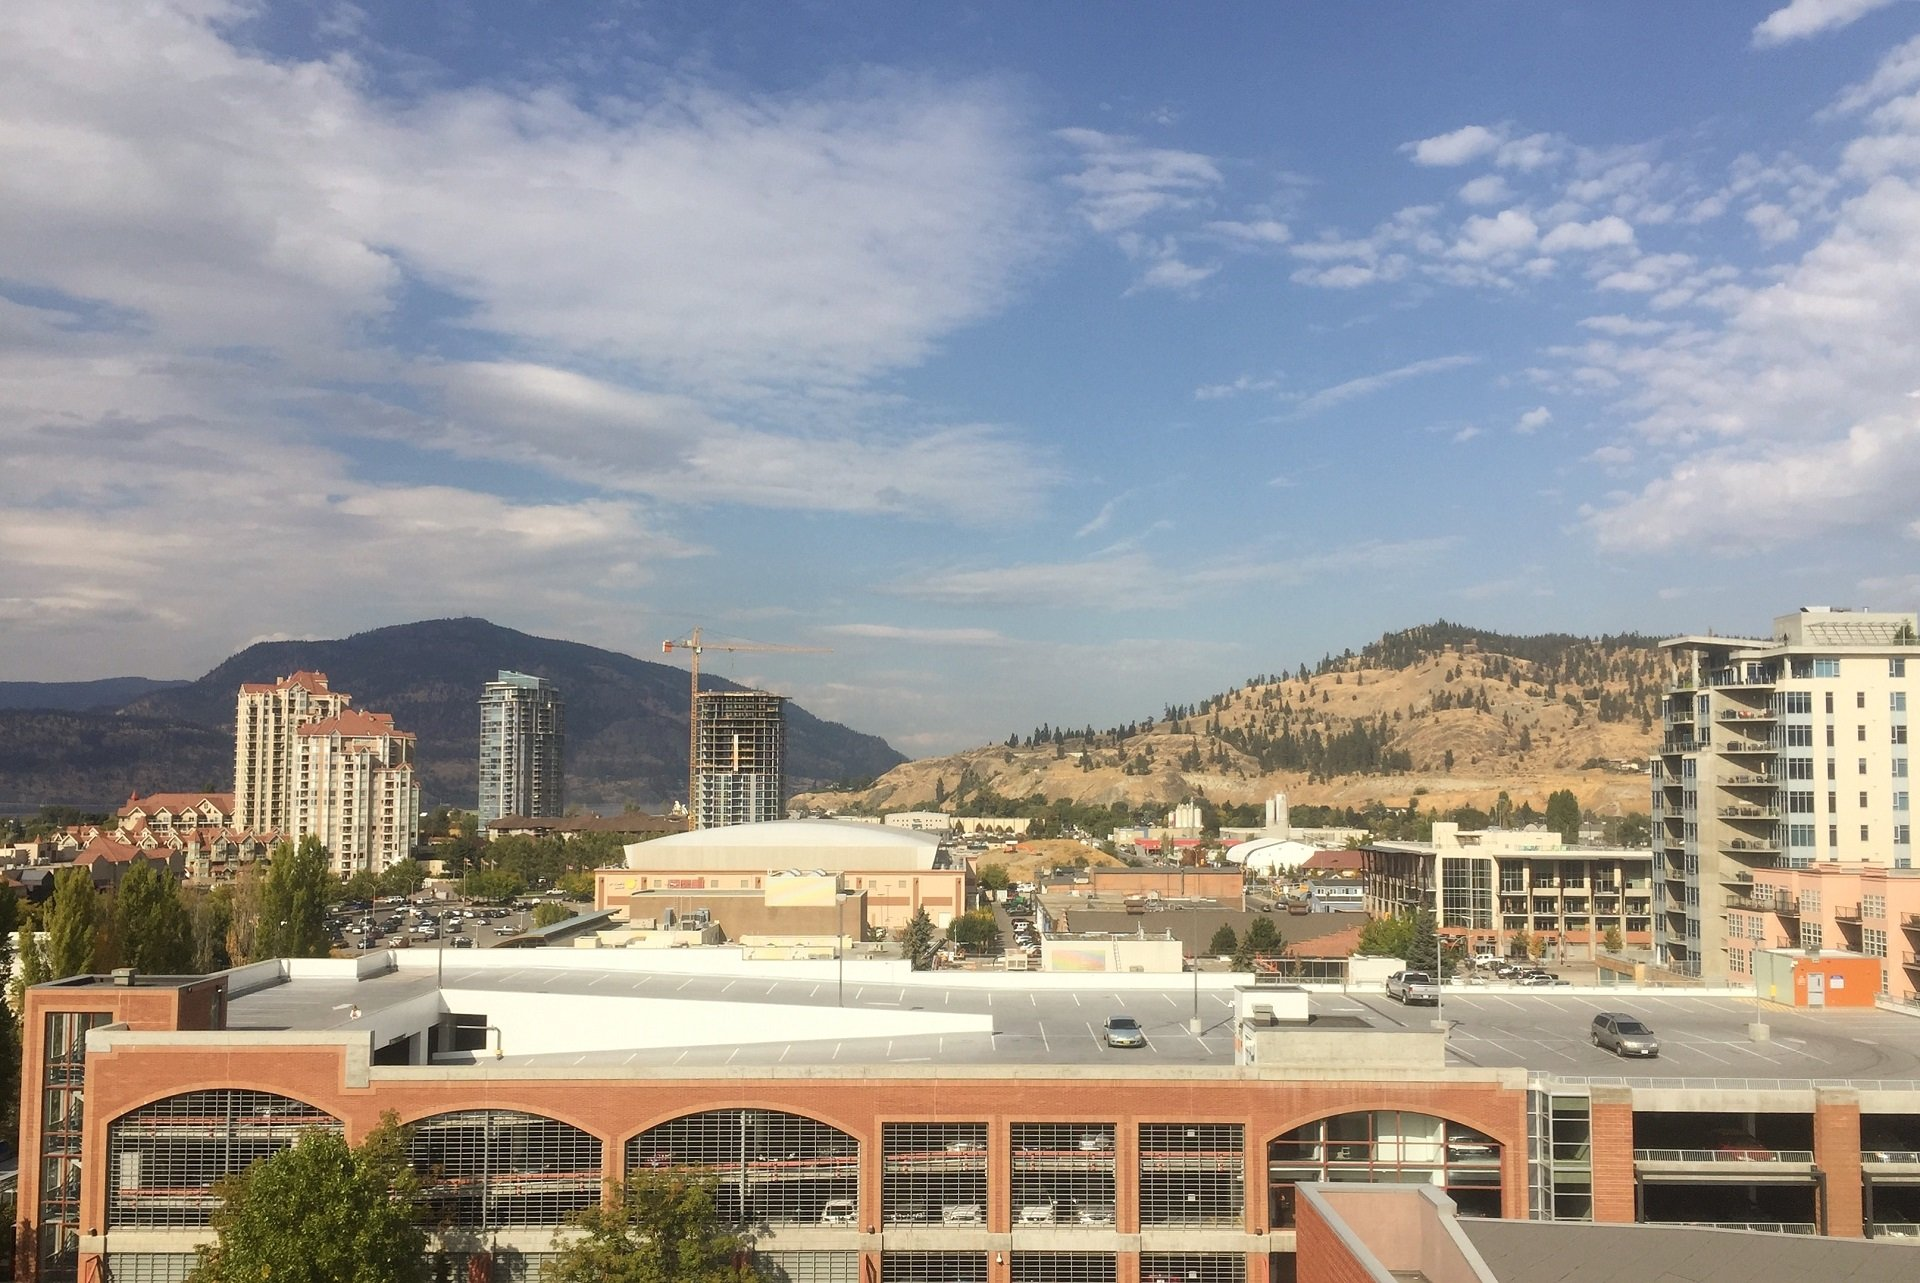 parkade-commercial-property-manager-TAFCO-Realty-Kelowna